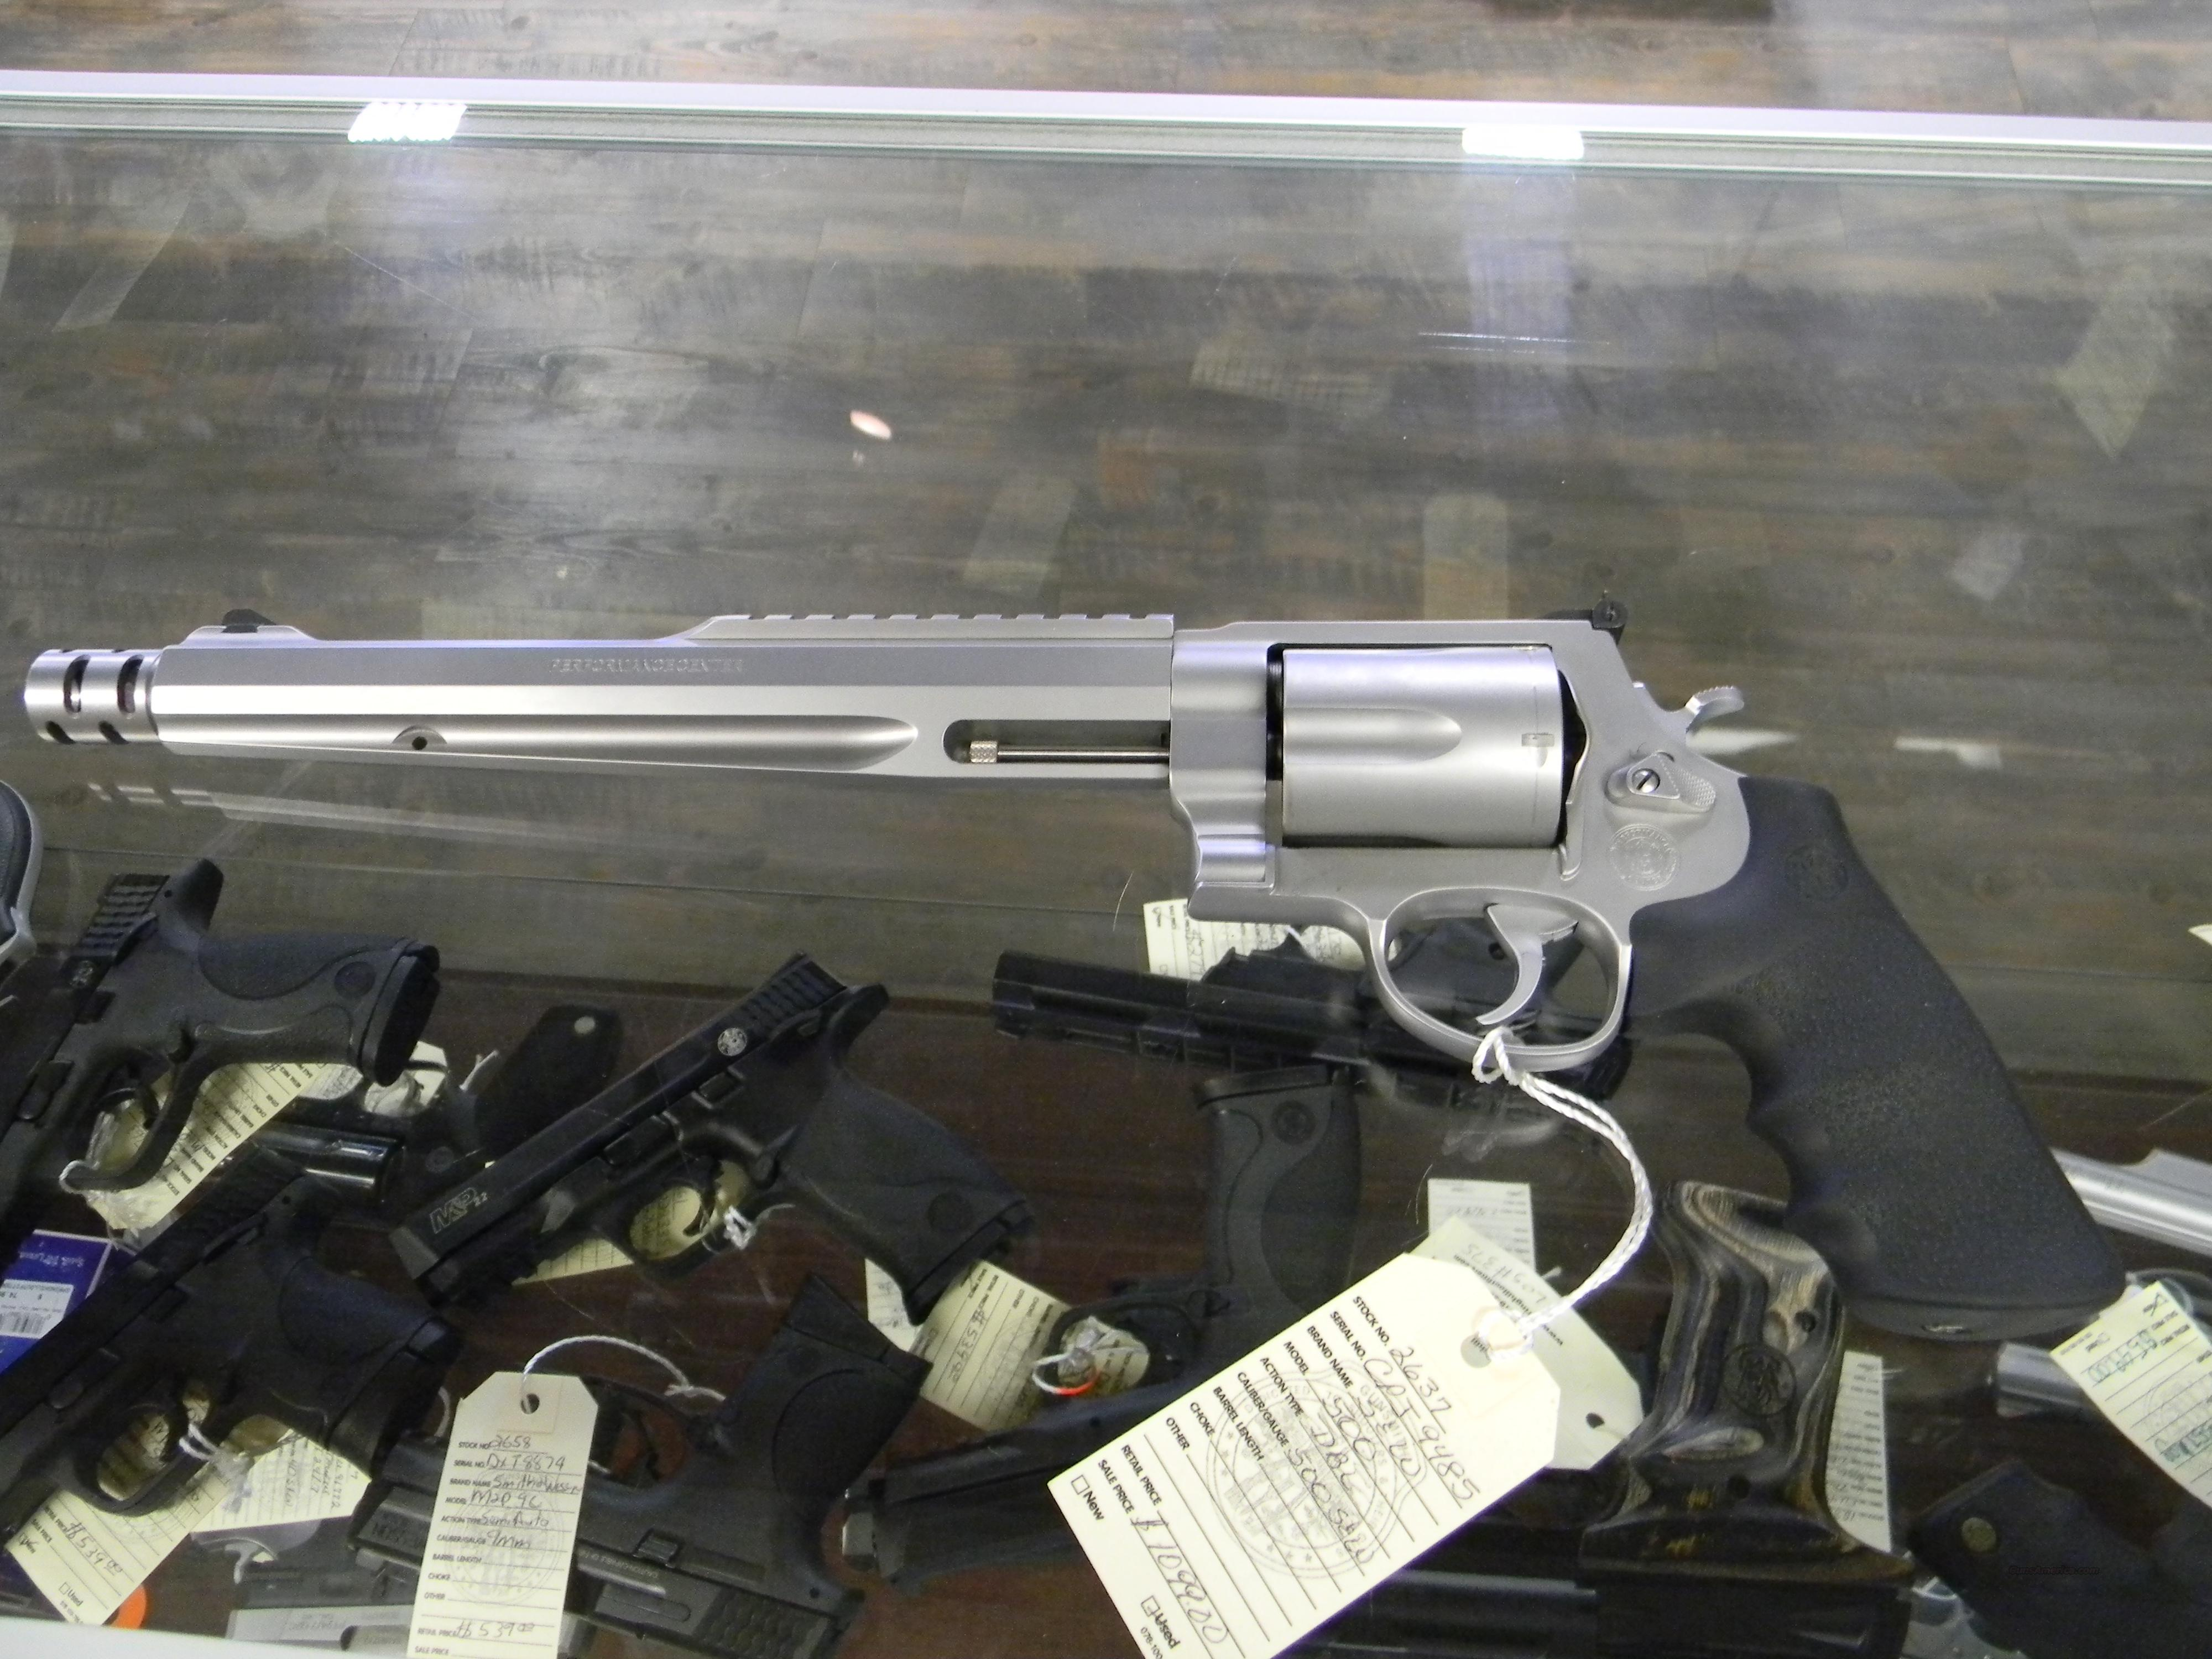 S&W  500 MAGNUM PERFORMANCE CENTER  Guns > Pistols > Smith & Wesson Revolvers > Performance Center